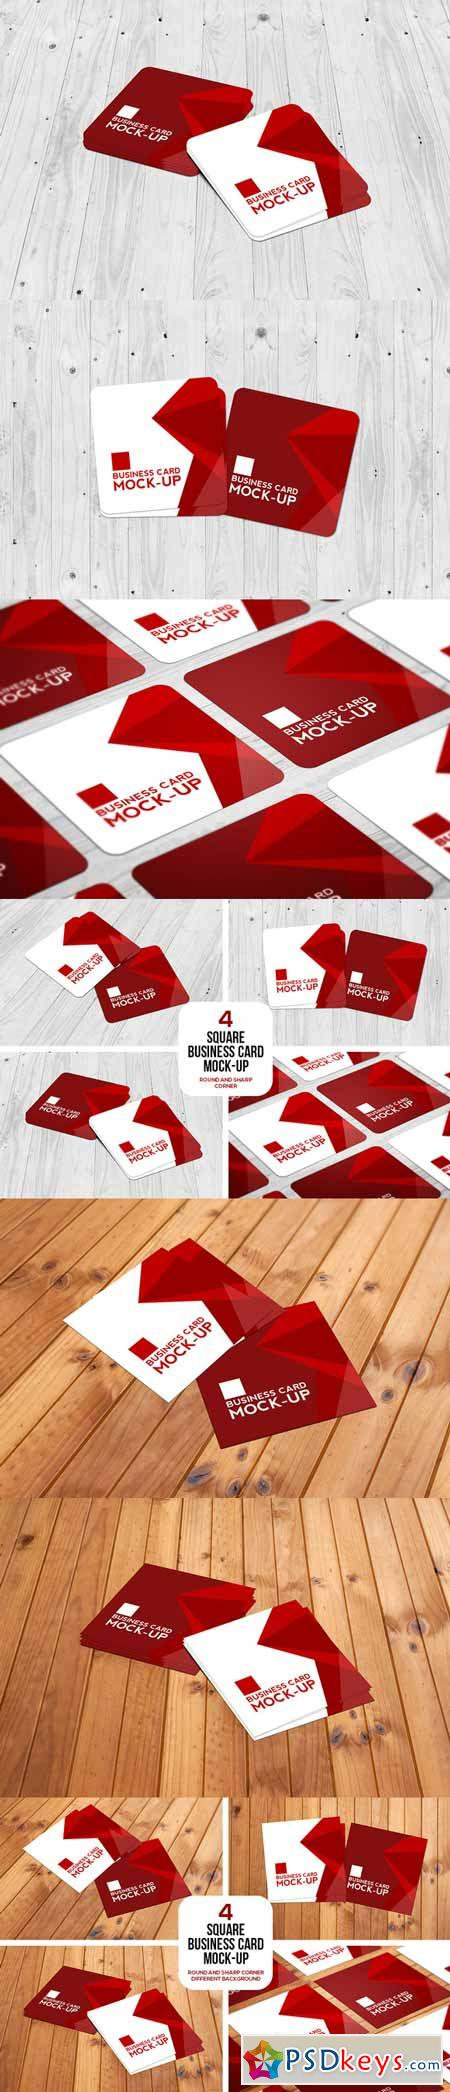 Square business card mockup set 594371 free download photoshop square business card mockup set 594371 reheart Choice Image